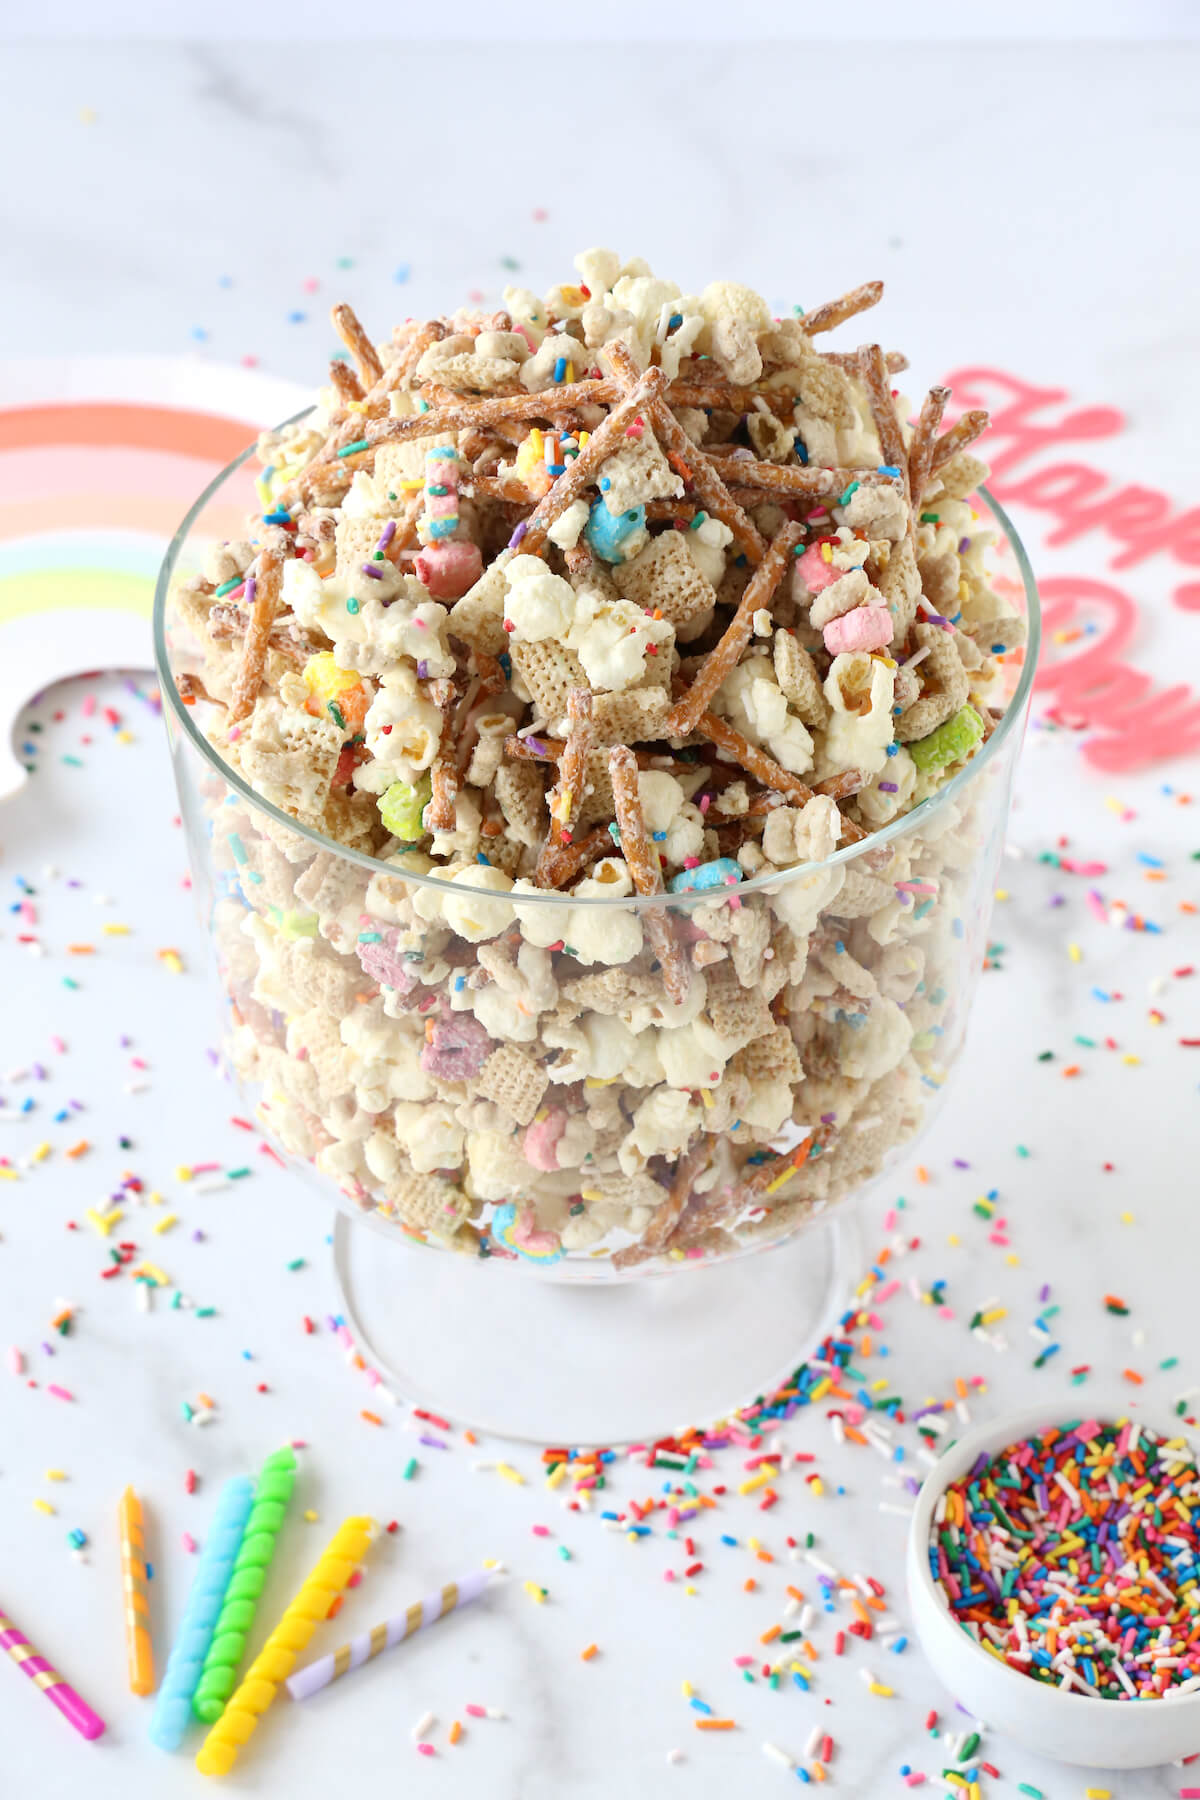 a clear bowl filled with cereal mix, pretzels, popcorn and rainbow sprinkles